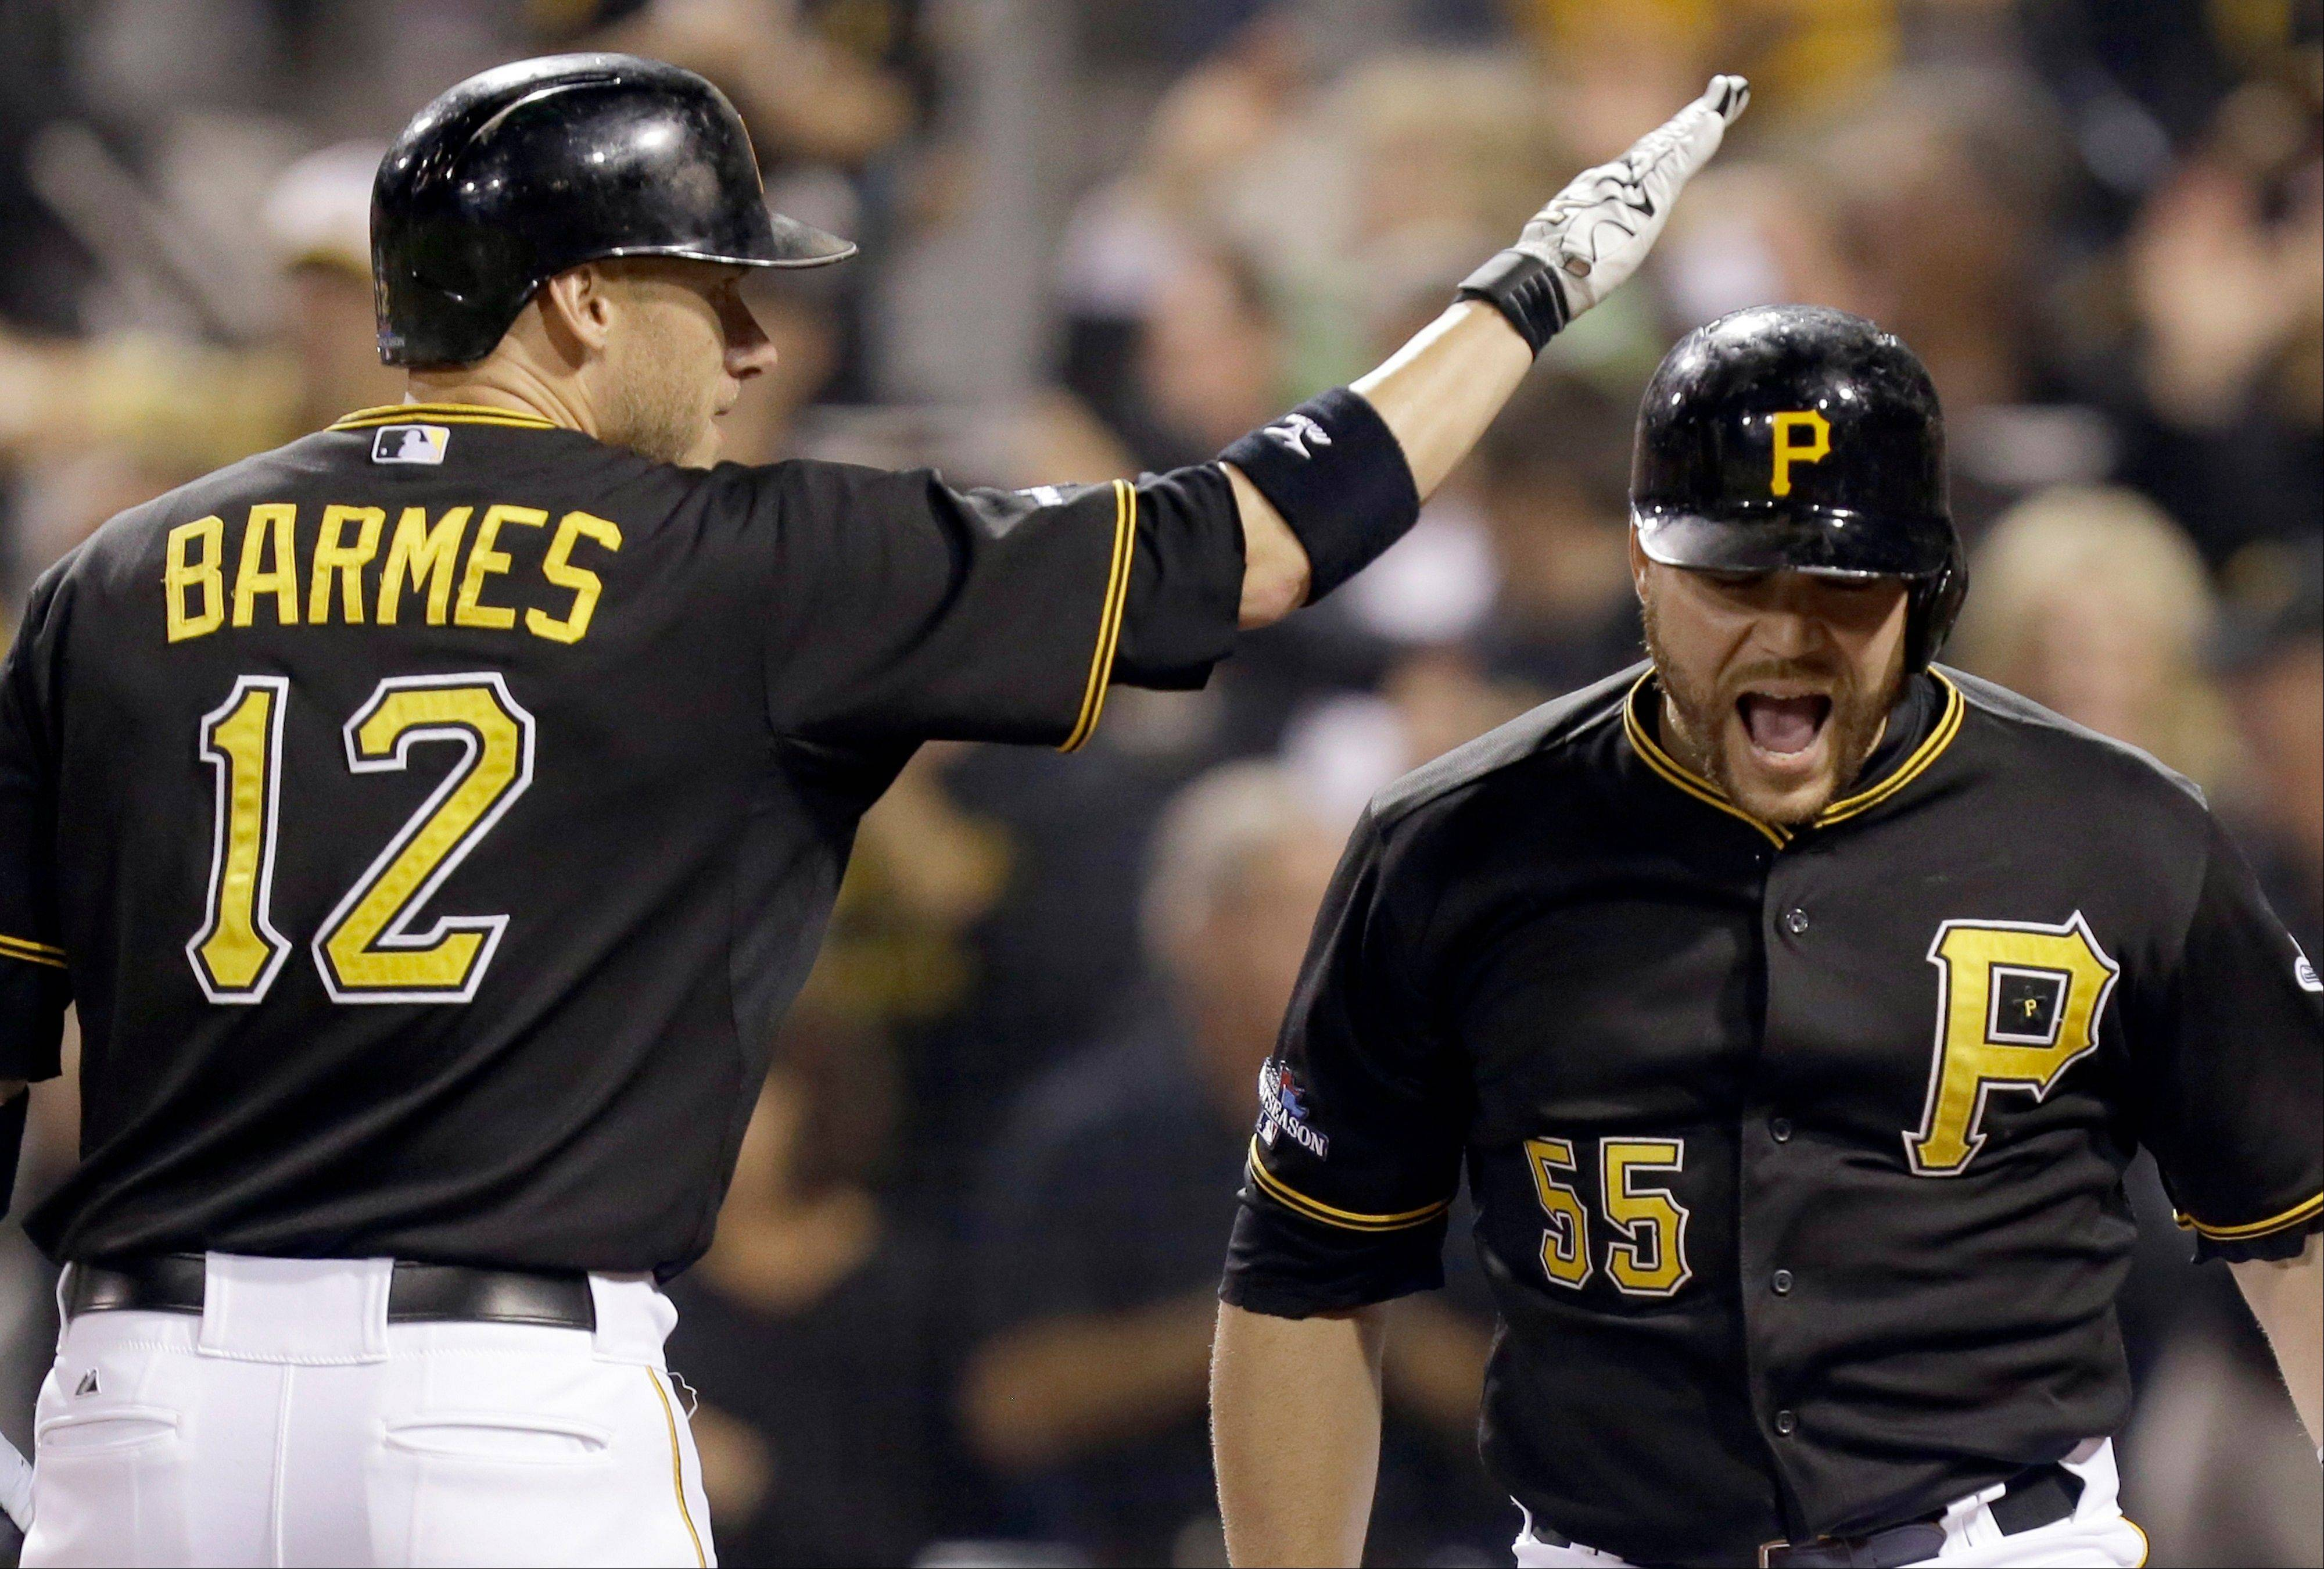 Pittsburgh Pirates' Russell Martin (55) is greeted by on-deck batter Clint Barmes (12) after hitting a home run in the second inning of the NL wild-card playoff baseball game against the Cincinnati Reds on Tuesday, Oct. 1, 2013, in Pittsburgh.